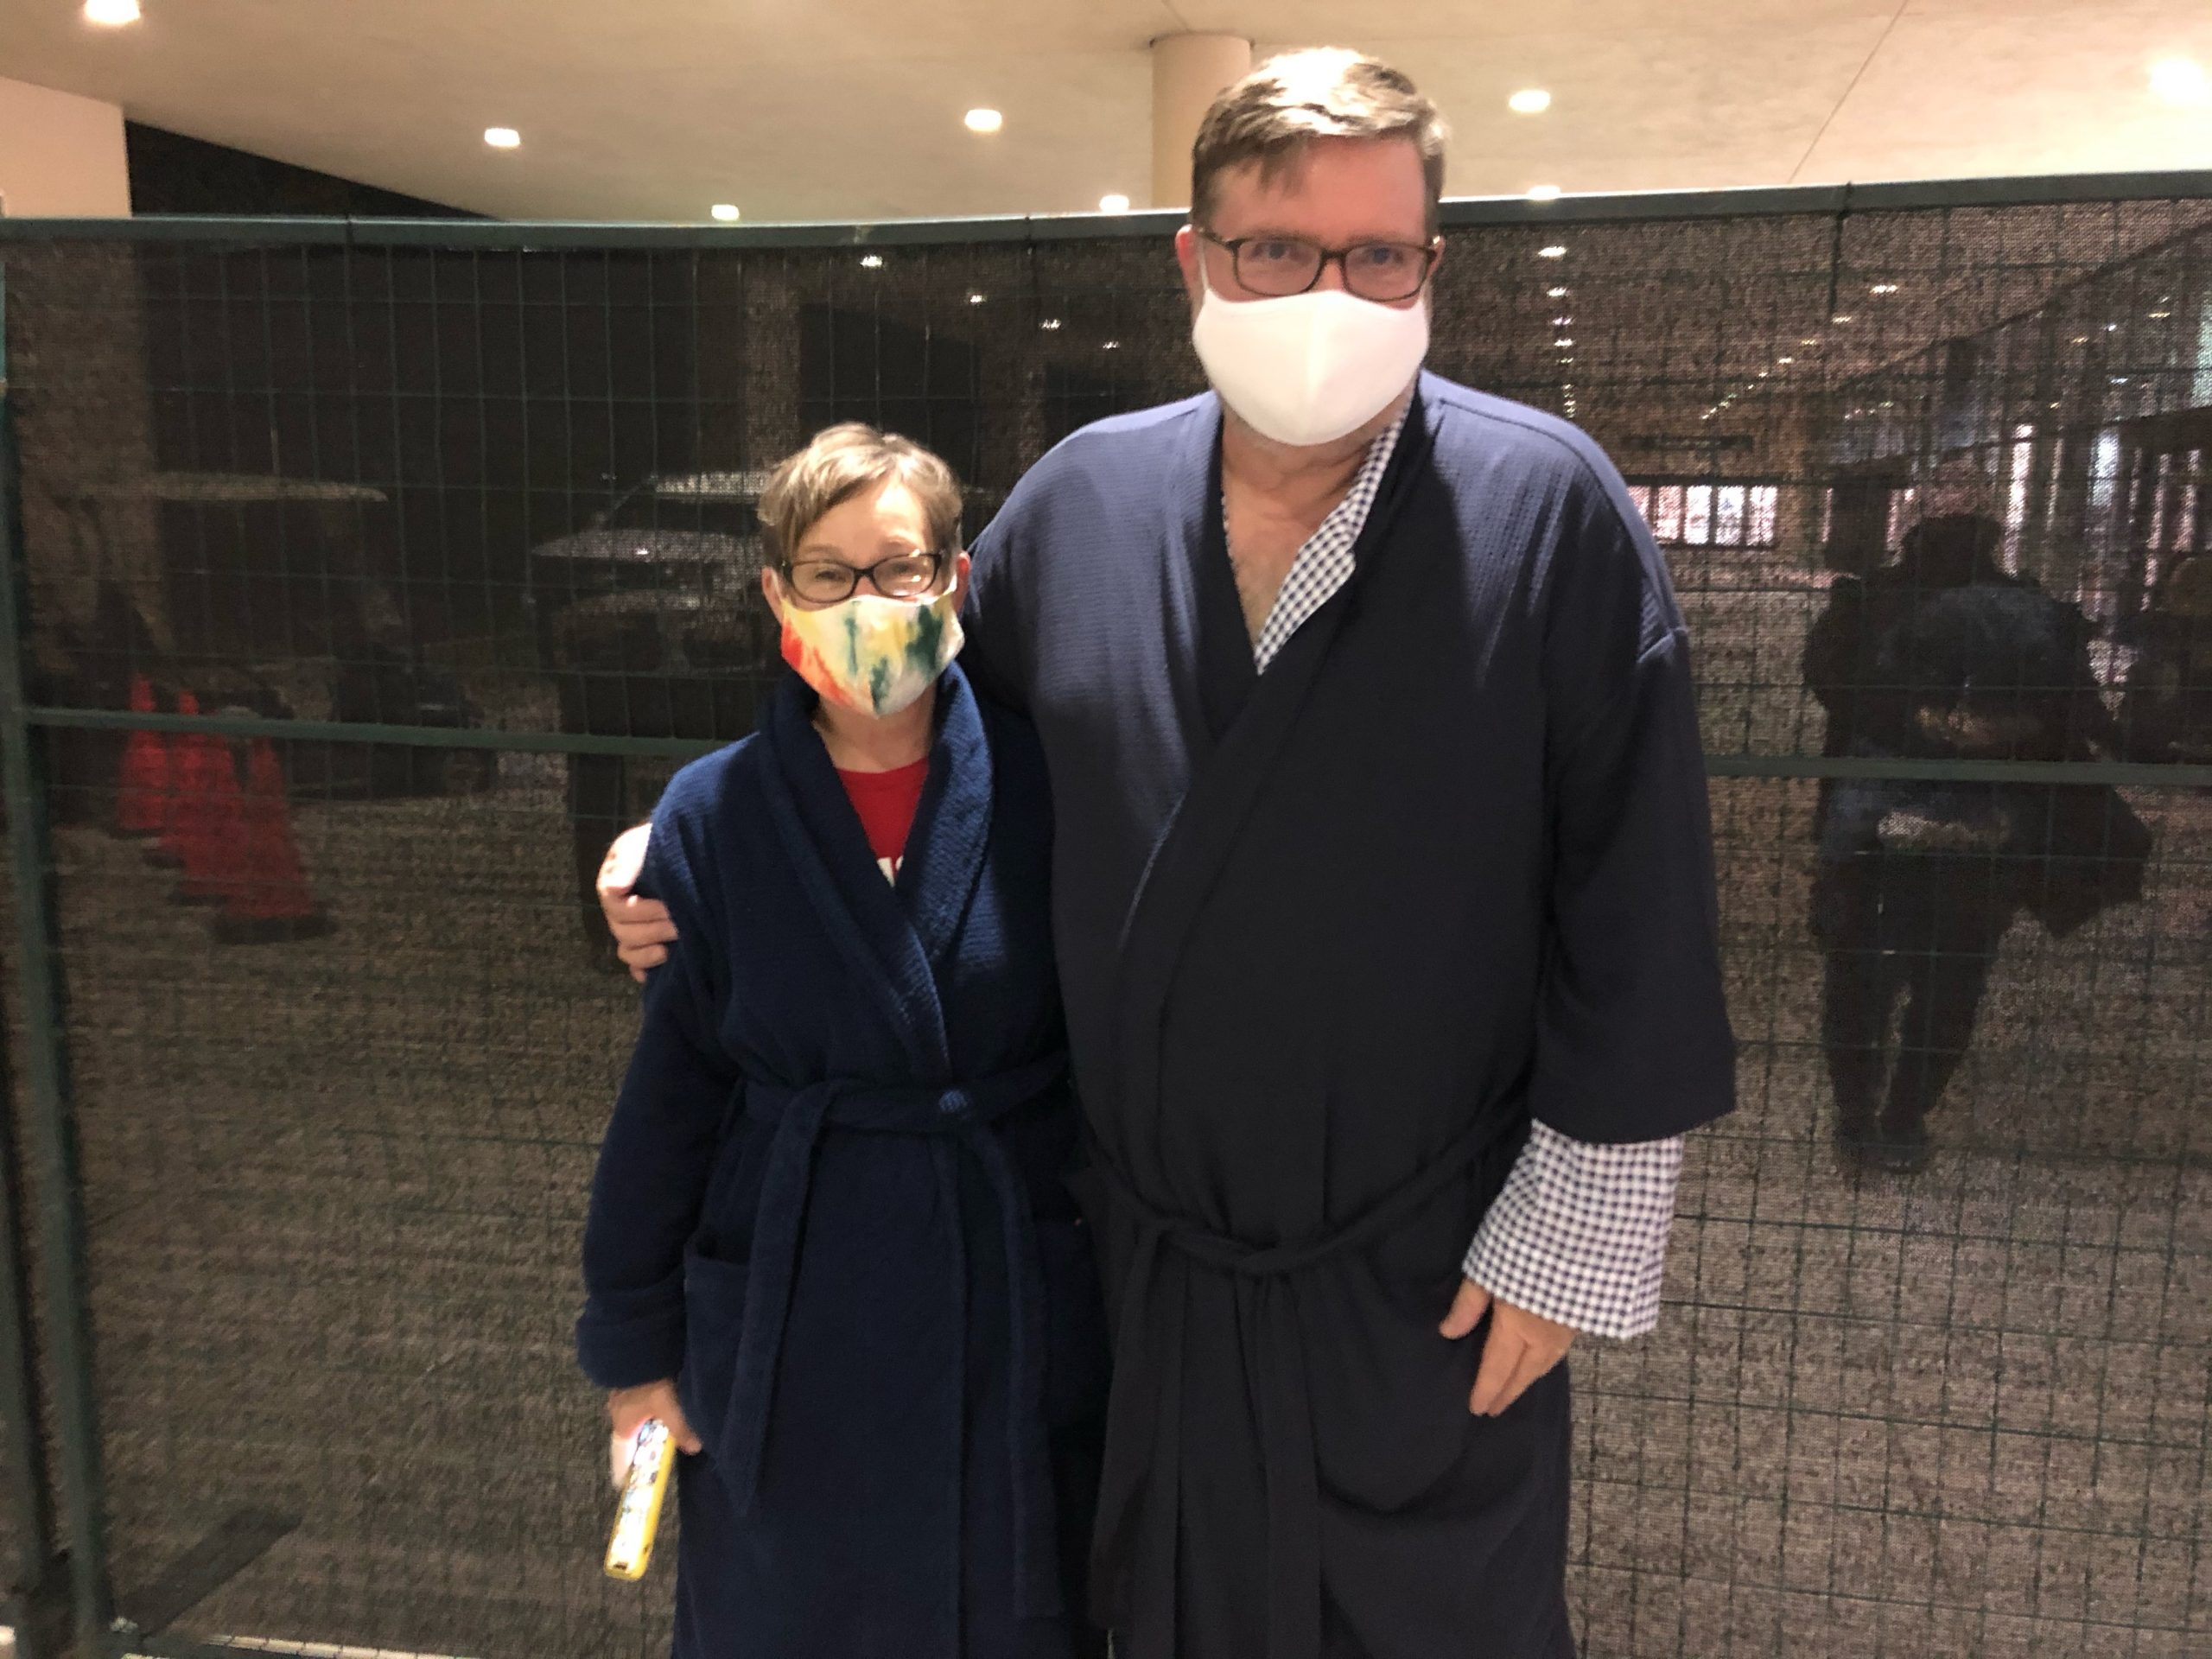 A couple in bathrobes at NRG Park took advantage of Harris County's historic opportunity to vote all night.